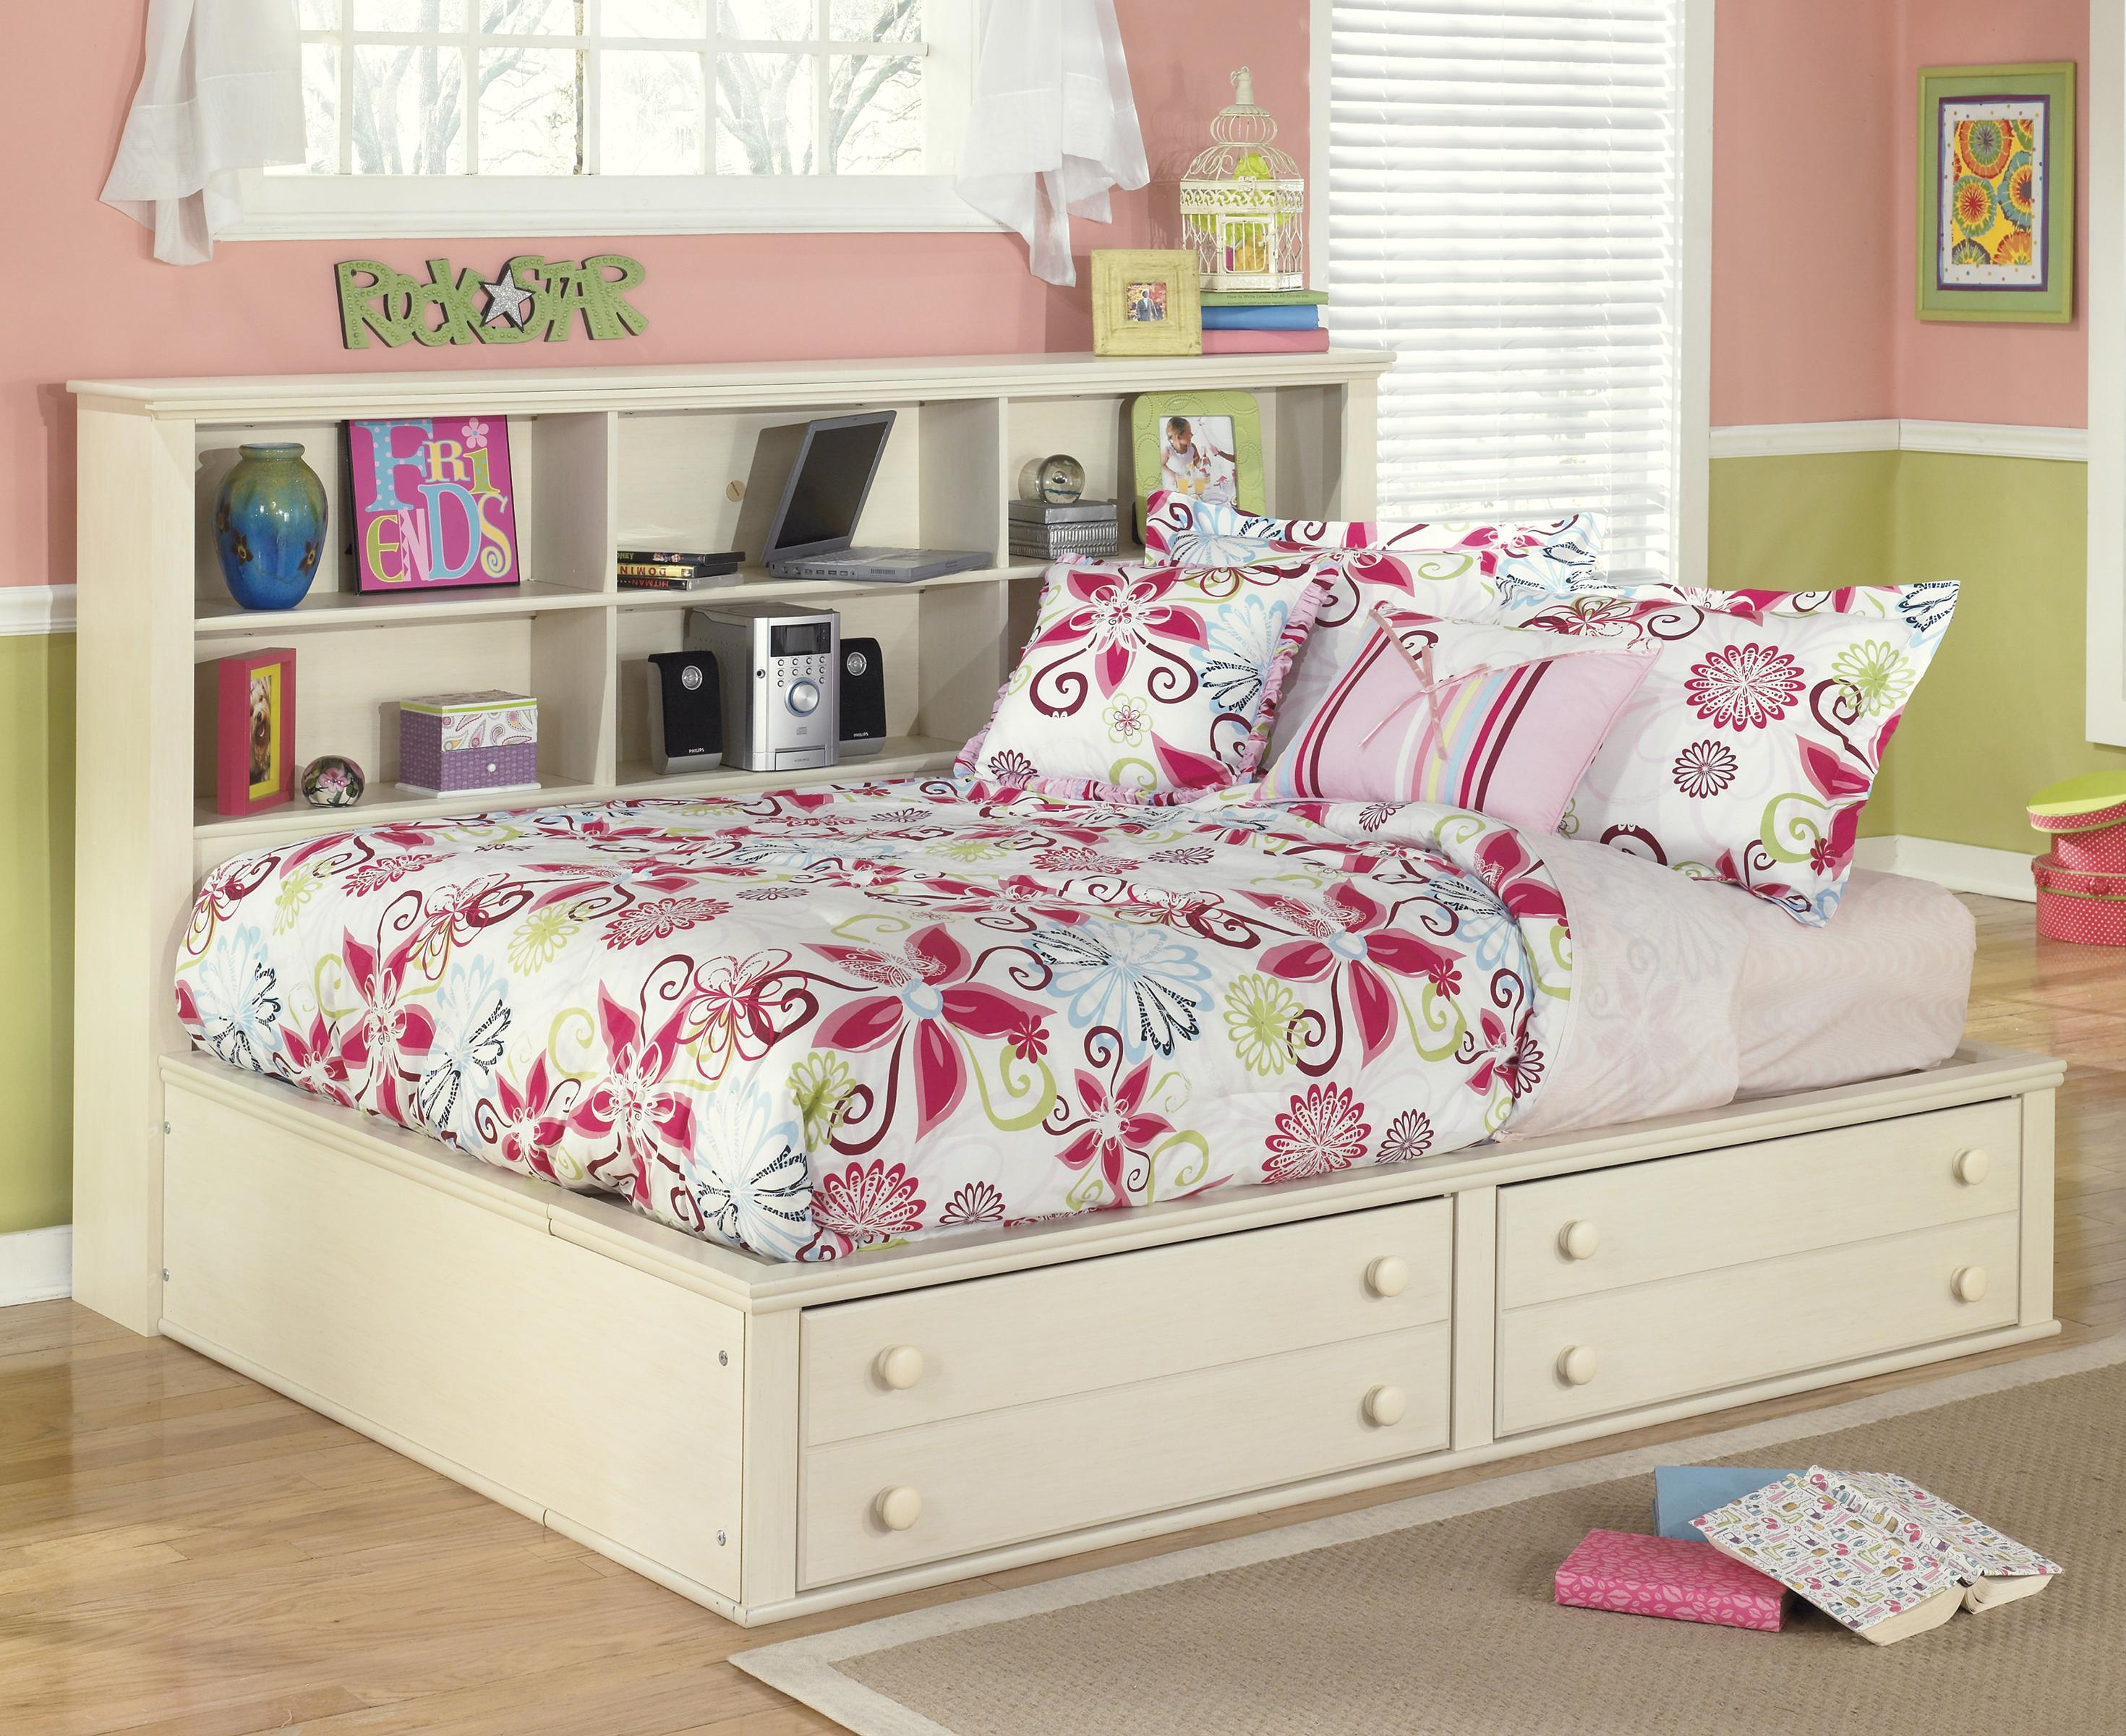 Signature Design by Ashley Cottage Retreat Full Bookcase Bed with Footboard Storage - Item Number: B213-85+05+86